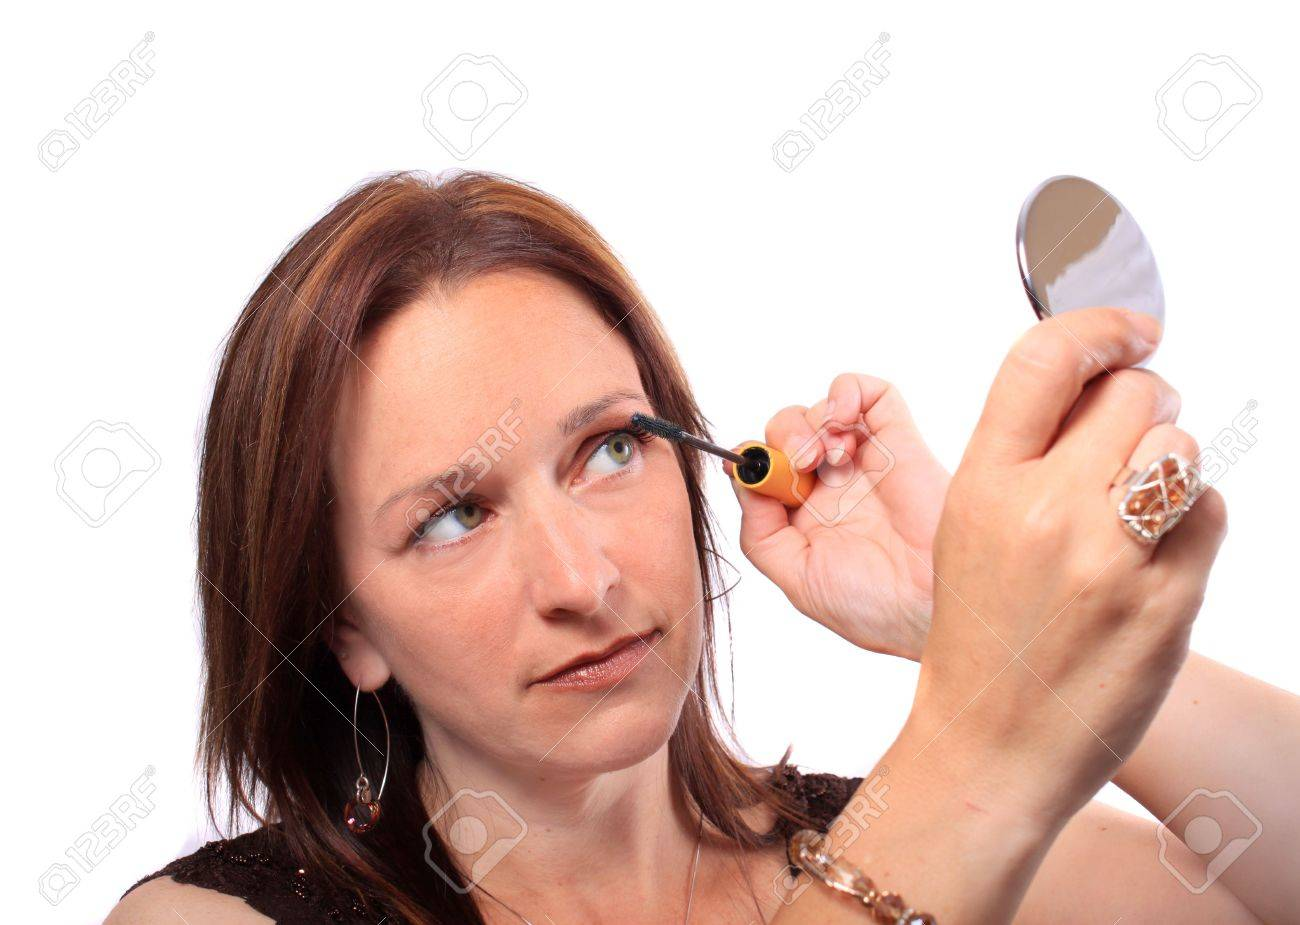 woman holding hand mirror. woman holding hand mirror applies mascara to eyelashes stock photo - 7837521 i